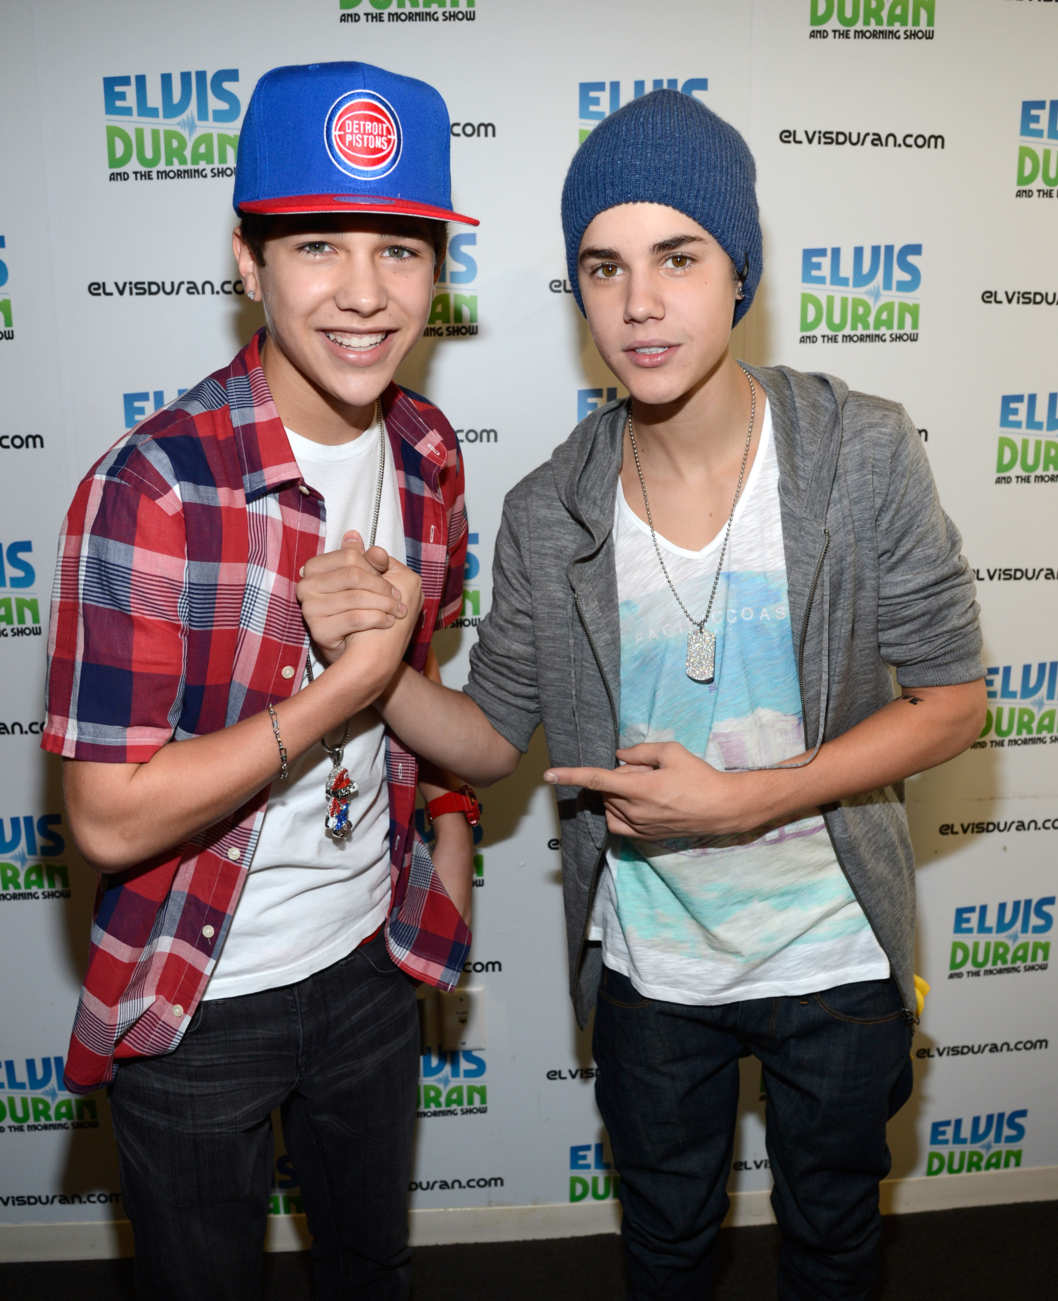 NEW YORK, NY - JUNE 21:  Austin Mahone and Justin Bieber visit The Elvis Duran Z100 Morning Show at Z100 Studio on June 21, 2012 in New York City.  (Photo by Kevin Mazur/WireImage)